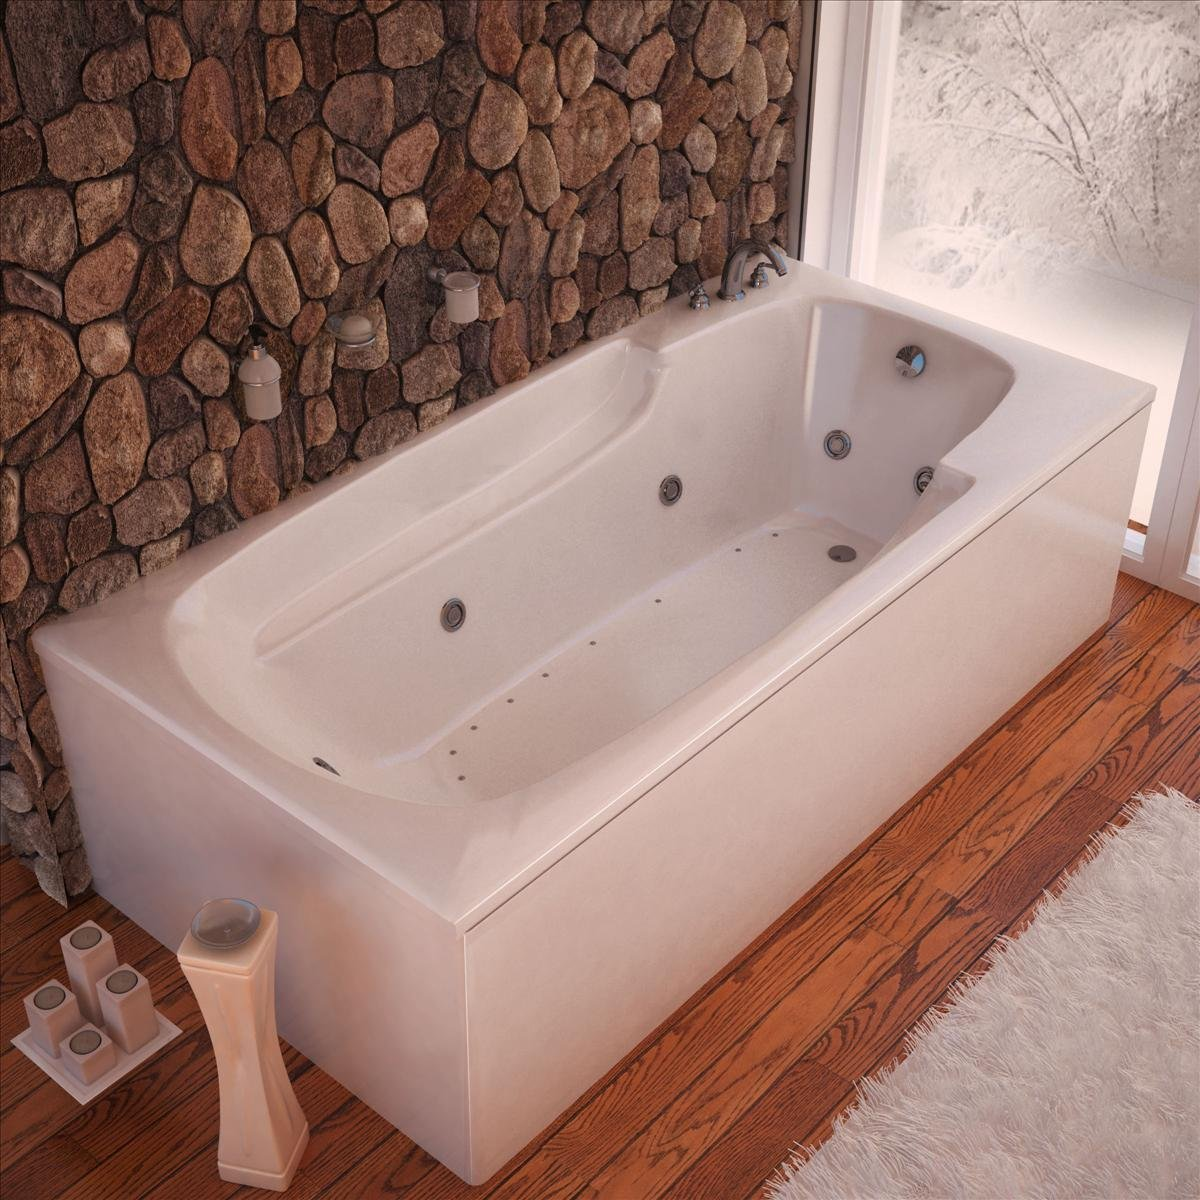 Atlantis Tubs 3260EDL Eros 32 x 60 x 23 - Inch Rectangular Air & Whirlpool Jetted Bathtub w/ Left Side Pump Placement